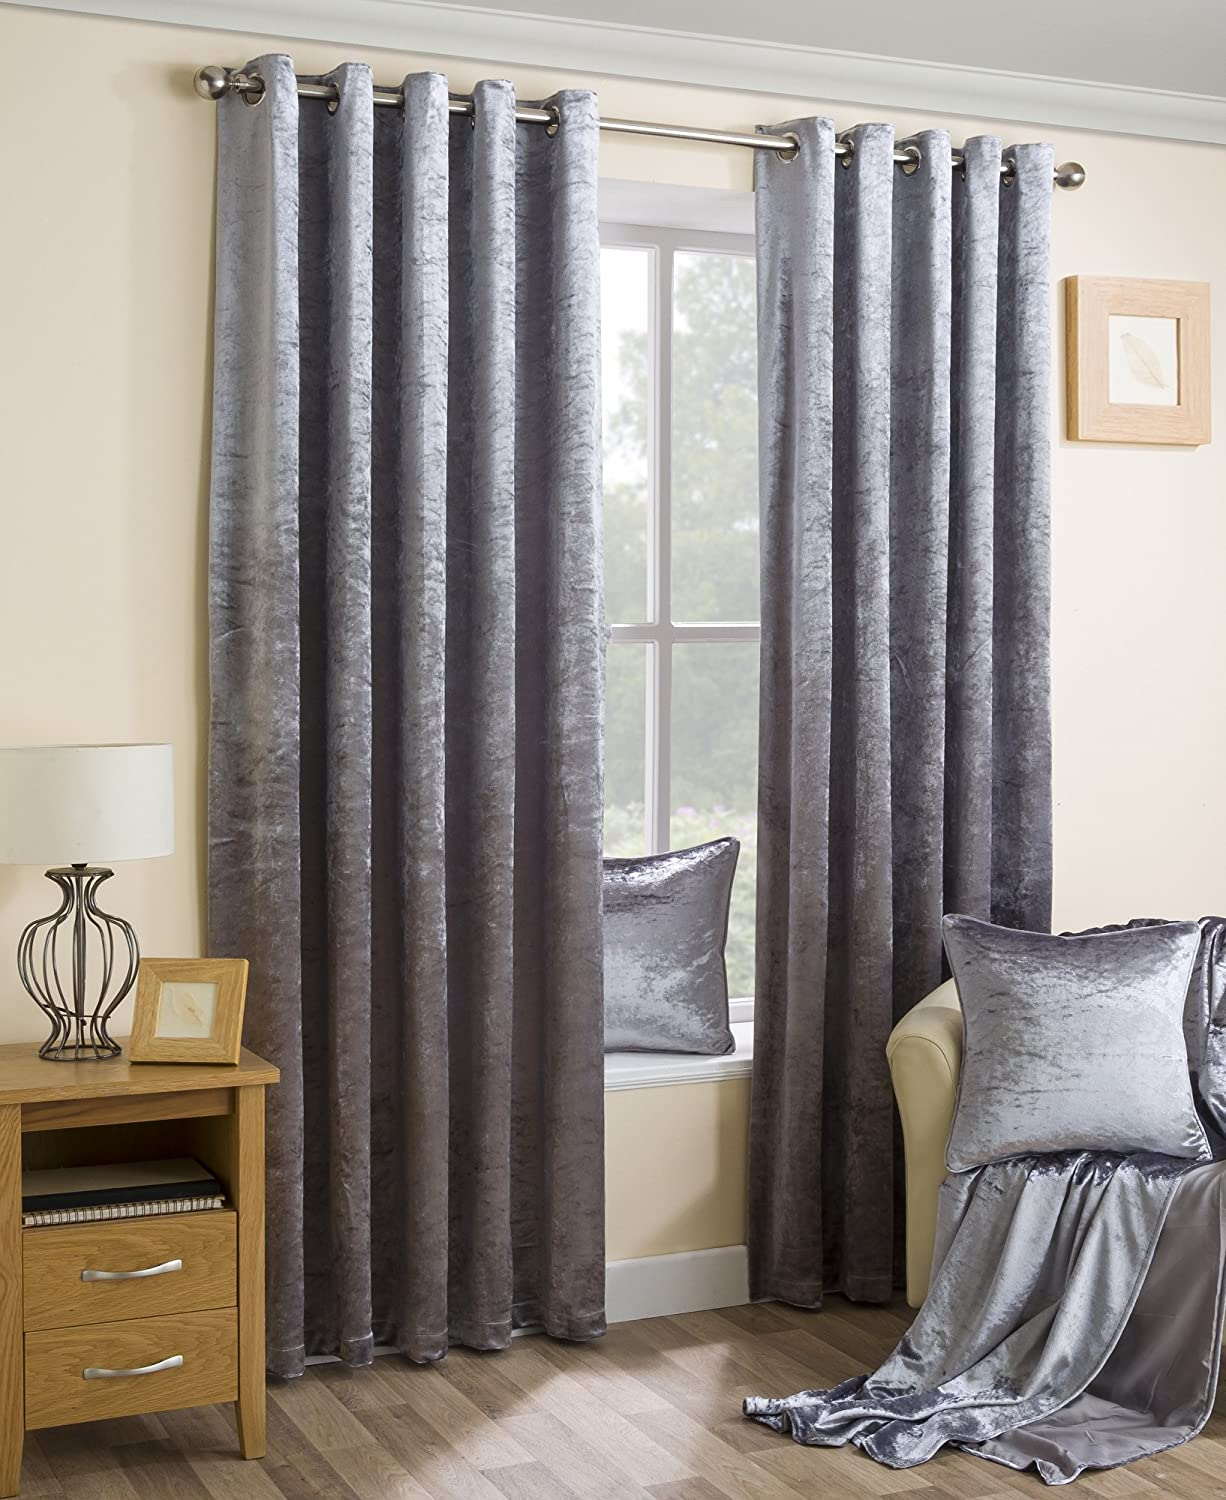 absolute drapes faux in curtain p black zero velvet curtains total length blackout panel